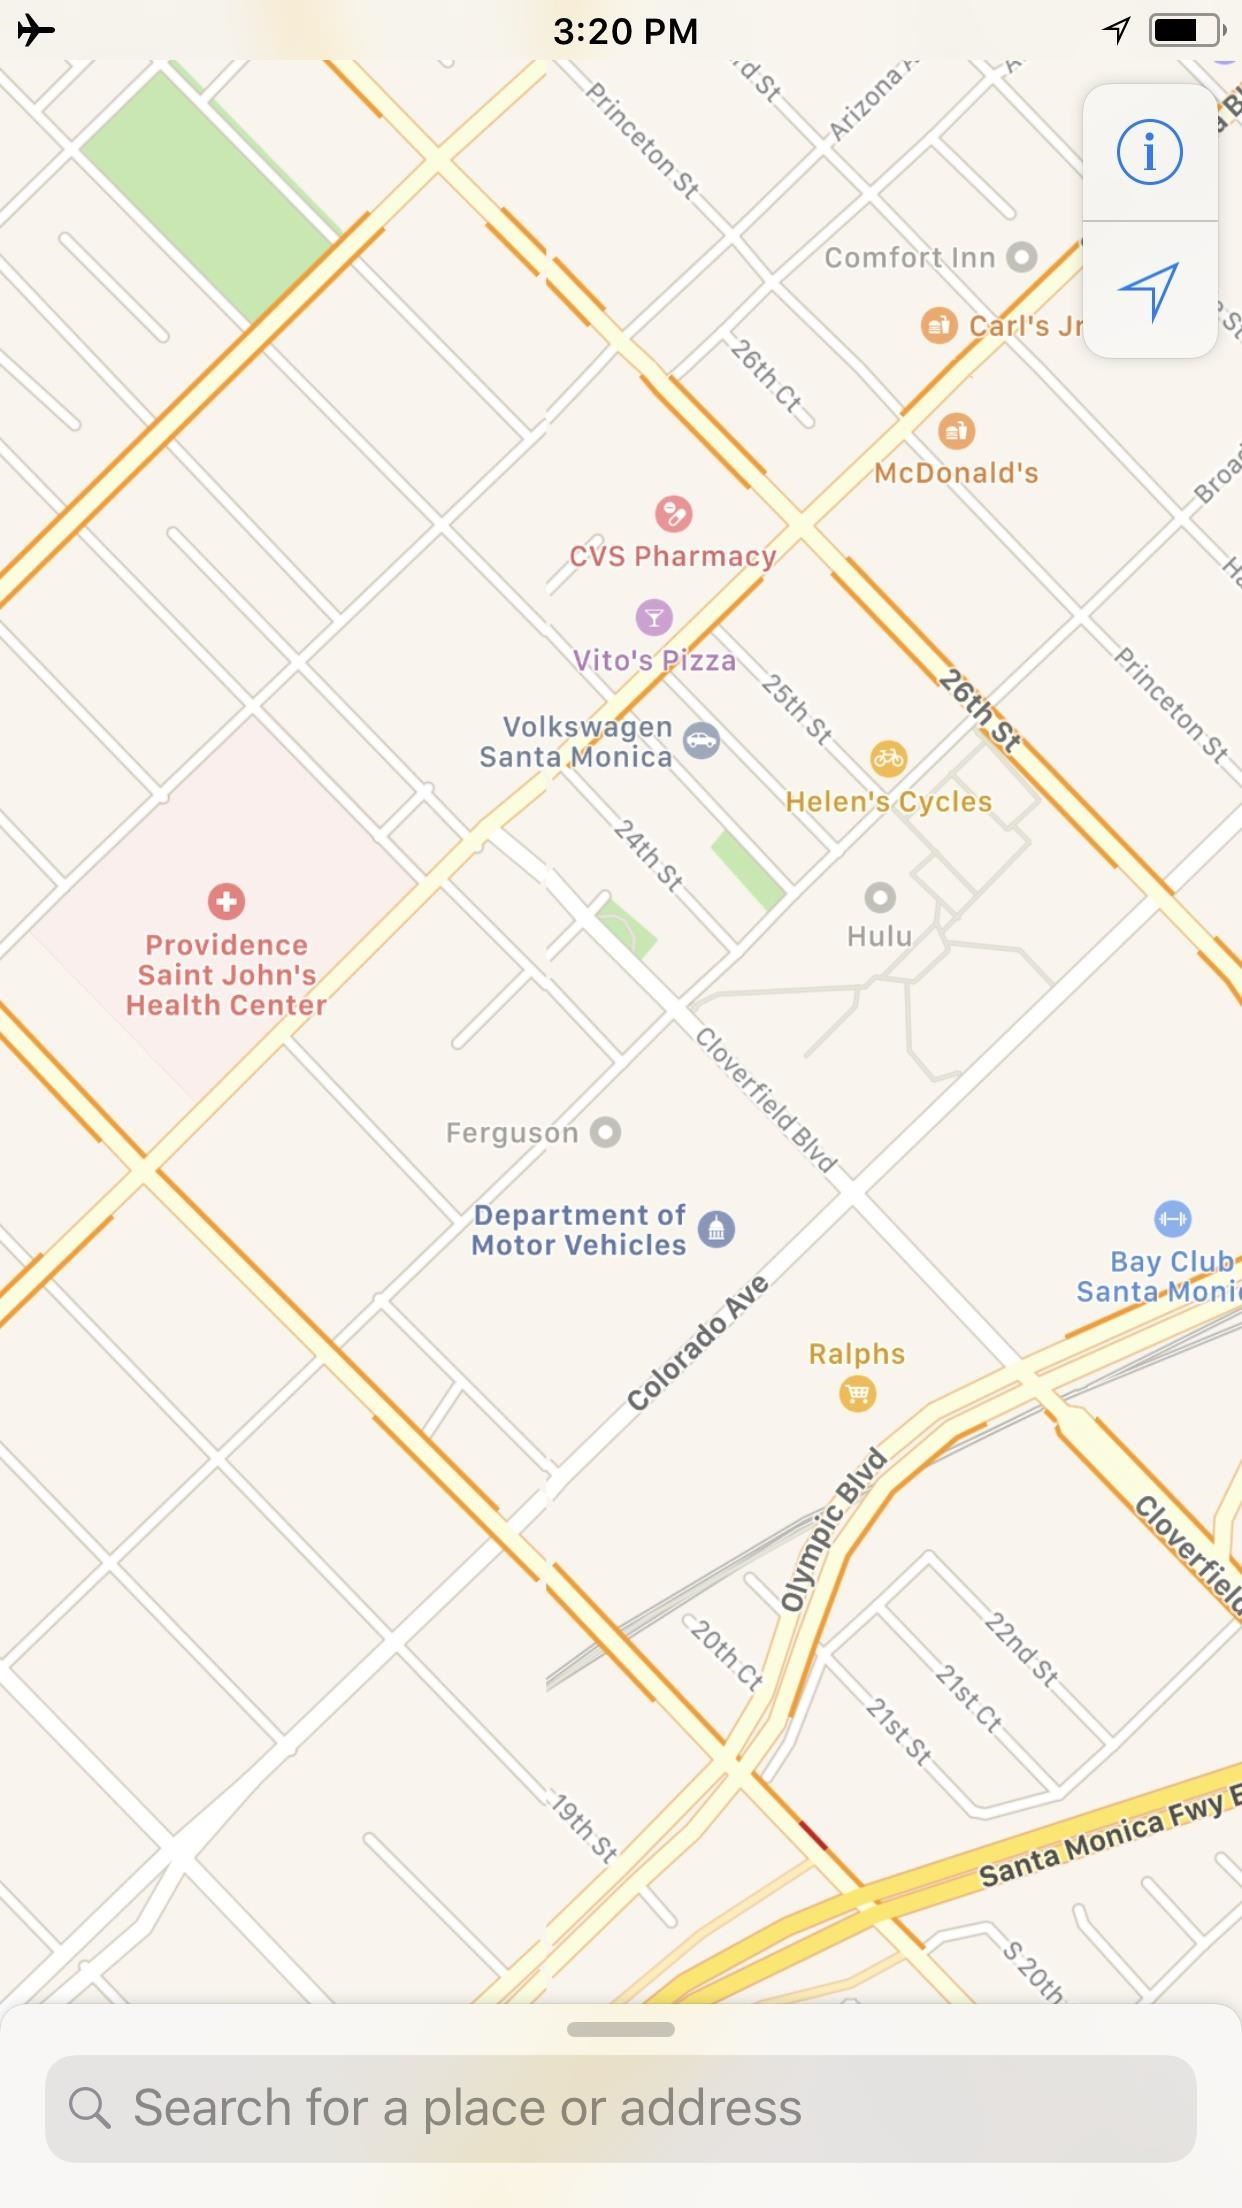 Apple Maps 101: How to View Offline Maps & Get Directions Without Using Any Internet